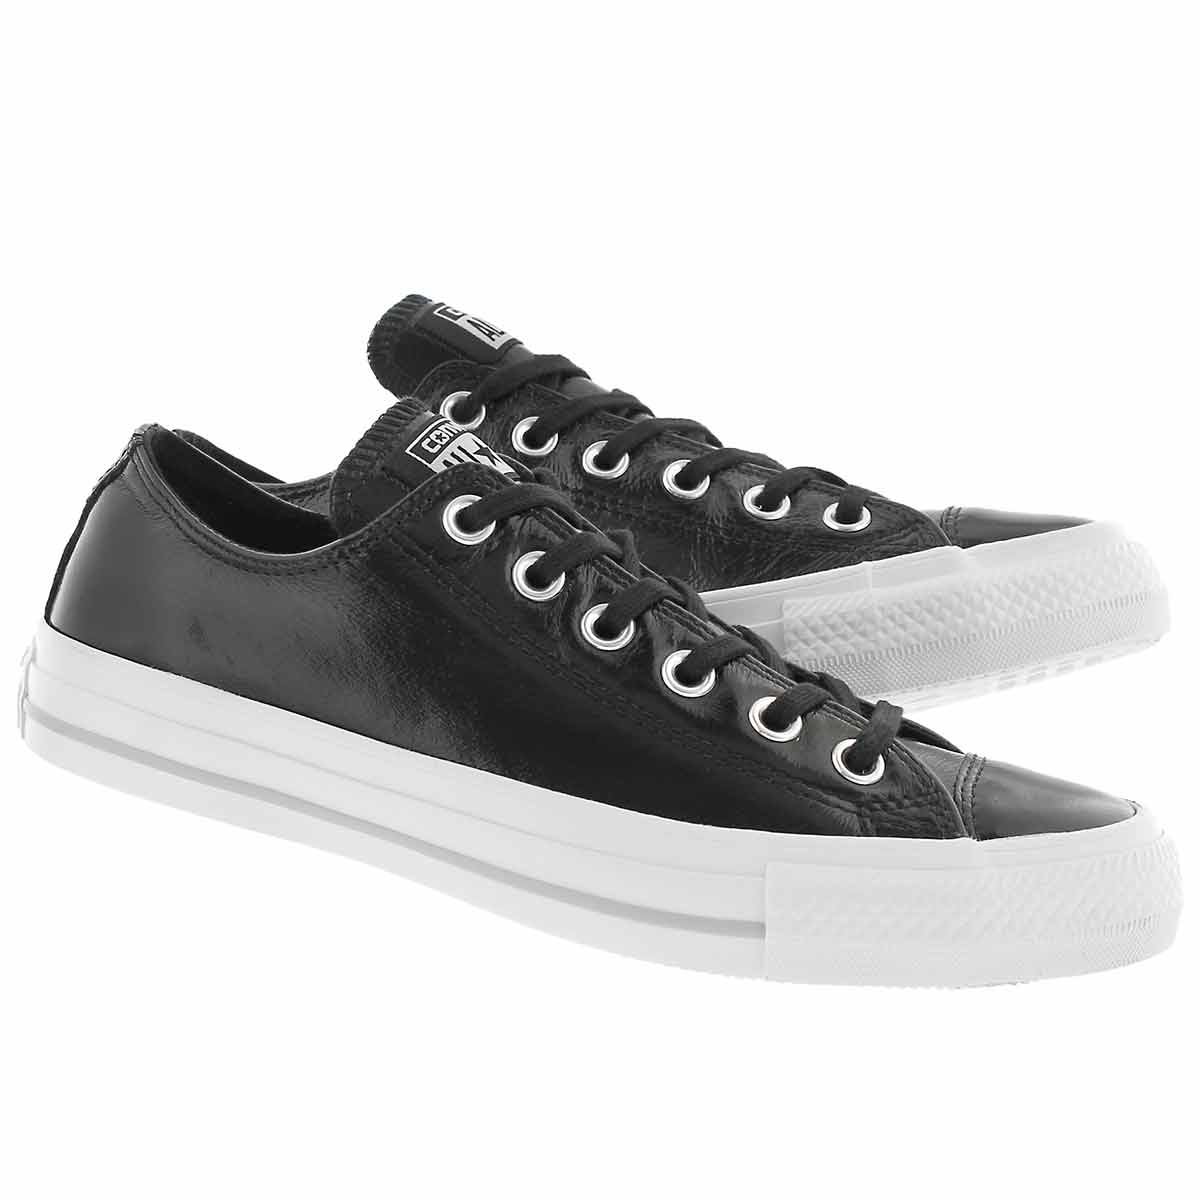 Lds CT A/S Classic Crinkled blk sneaker